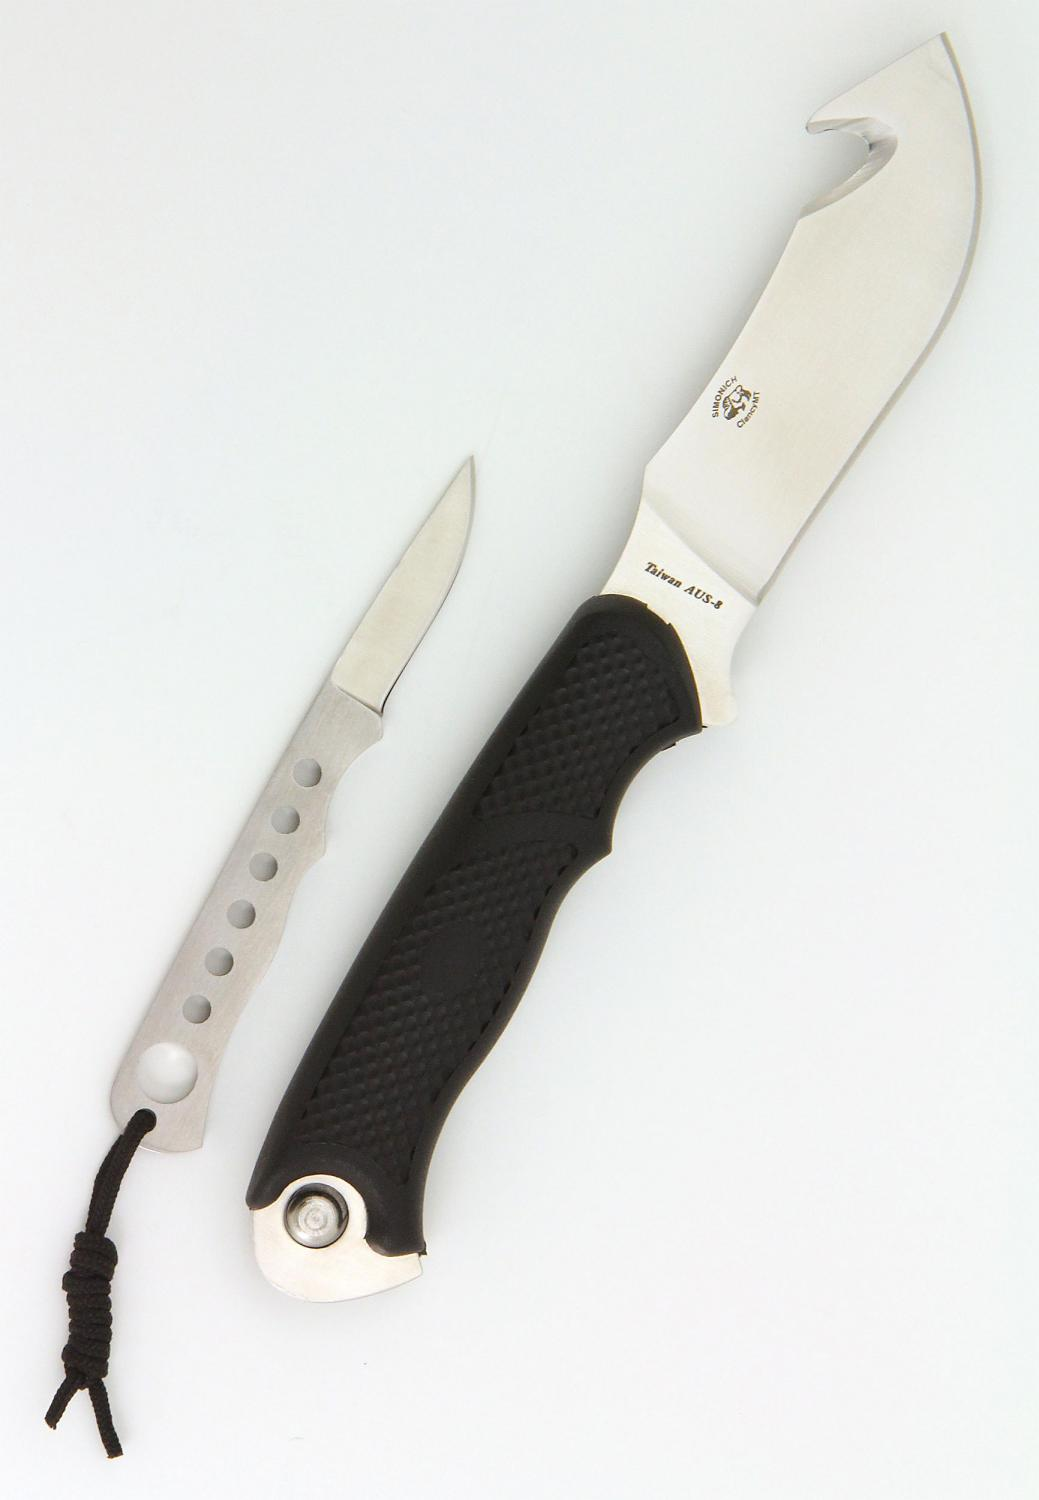 Camillus Parasite Fixed 4.25 inch Guthook Blade with Detachable Trimming Blade, Nylon Sheath